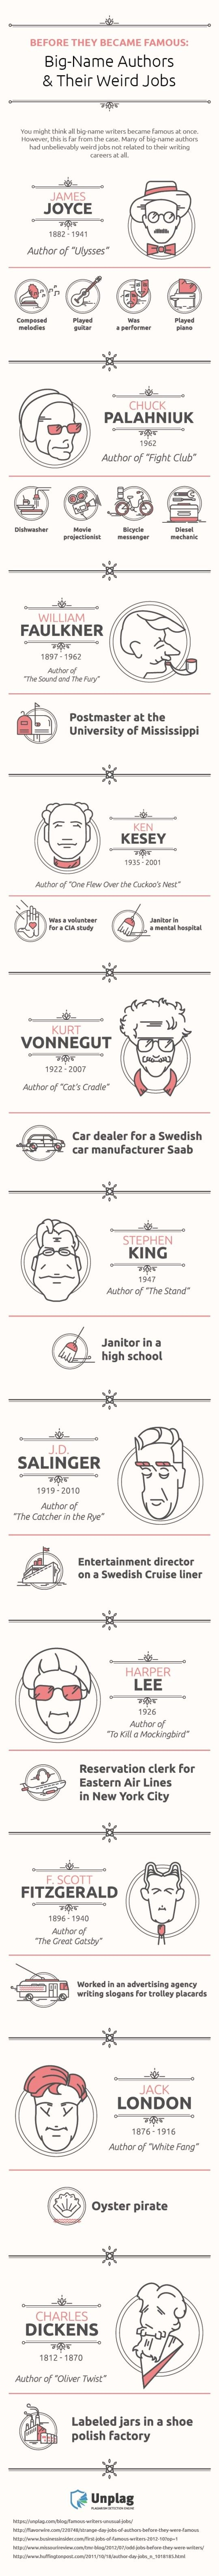 Famous Writers And Their Weird Jobs (infographic)